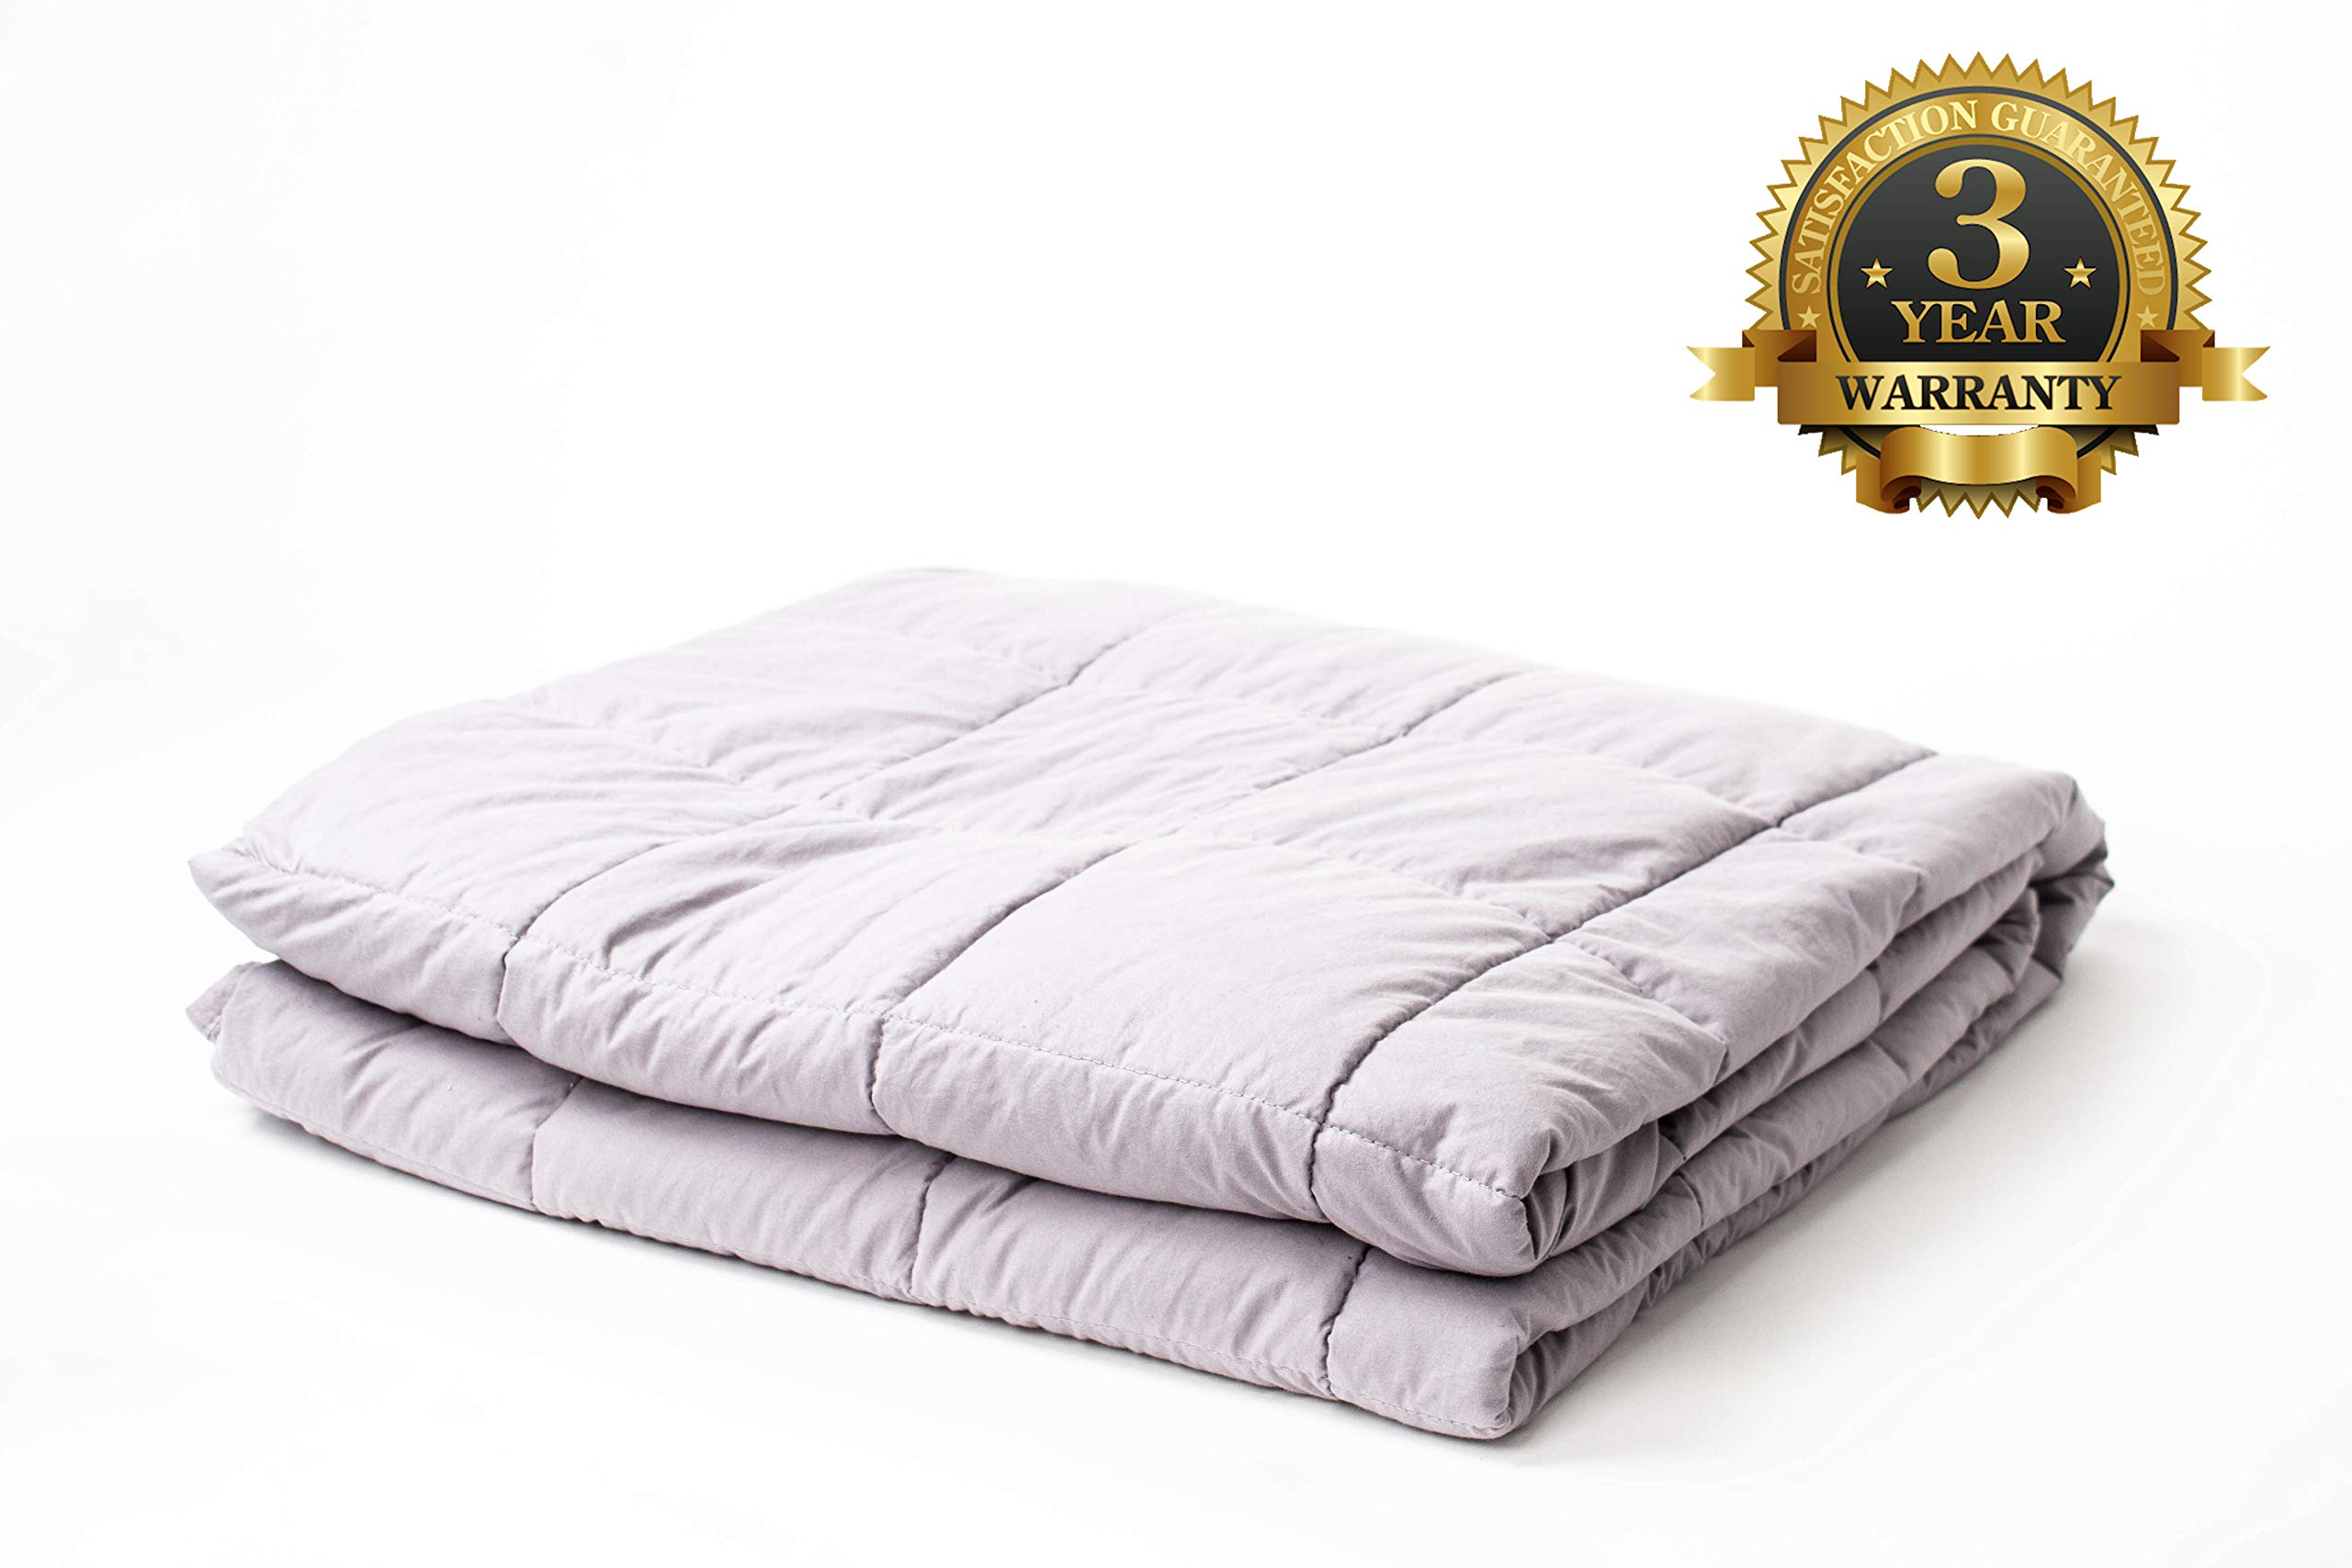 SYC & CO Exclusive Weighted Blanket with Cover Queen for Adults Hot & Cold Sleepers Unique Cooling Blanket with Glass Bead Design Extra Soft Heavy Blanket 20LBS Free Travel Bag by SYC & CO